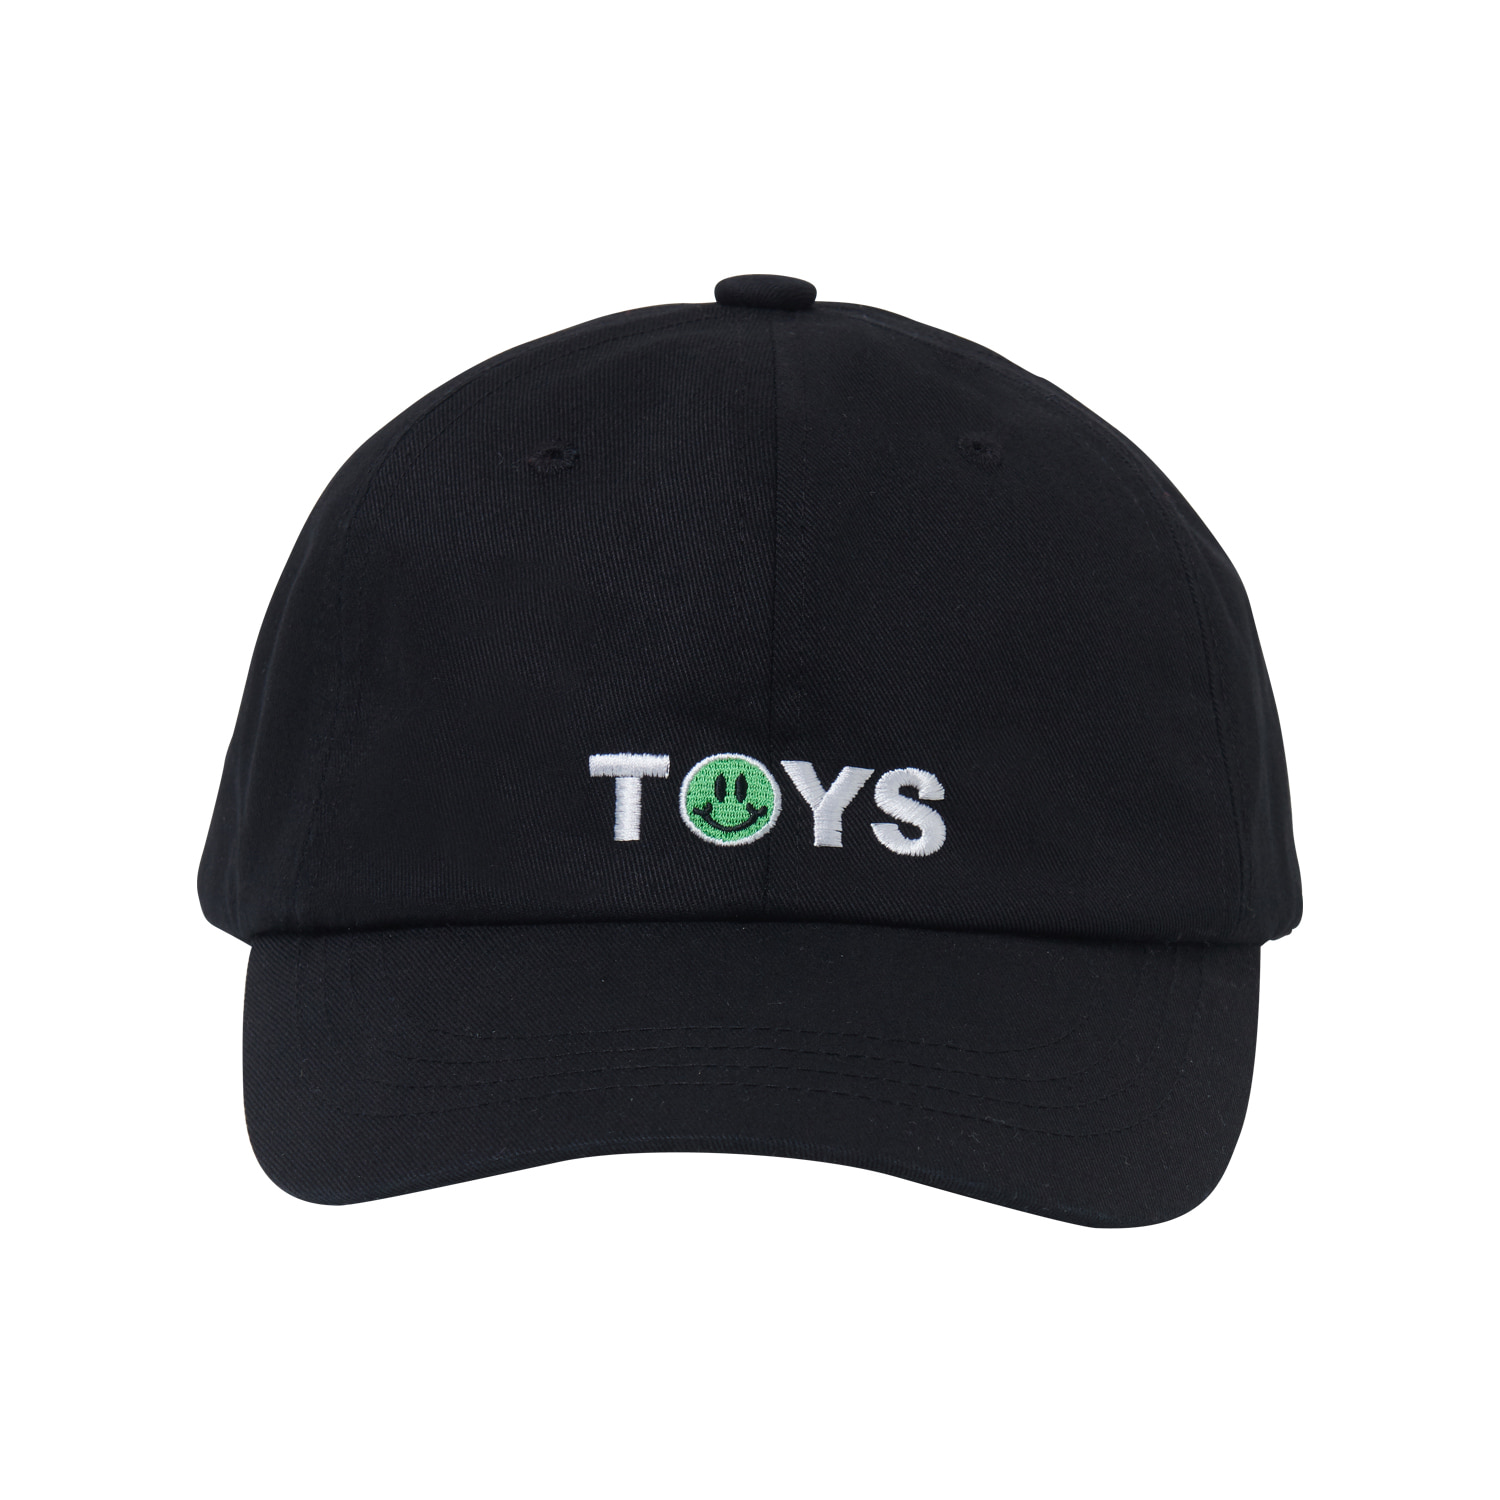 [75% OFF]TOYS BALL CAP(BLACK)